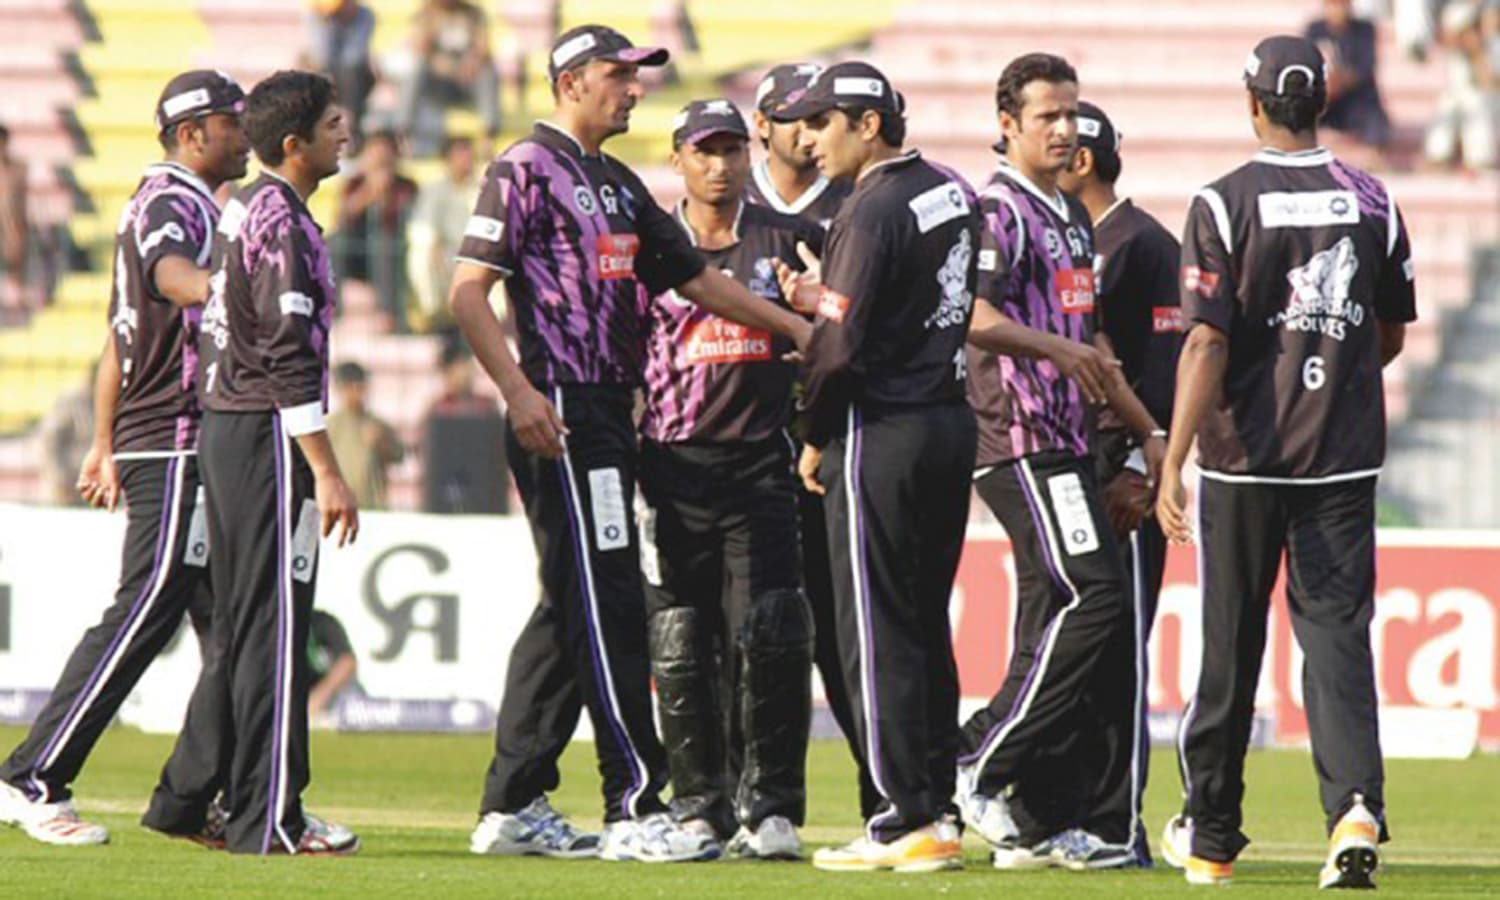 Faisalabad's national T20 team, Faisalabad Wolves. Faisalabad doesn't have a premier league team yet. (Pic: Urdu Wire)